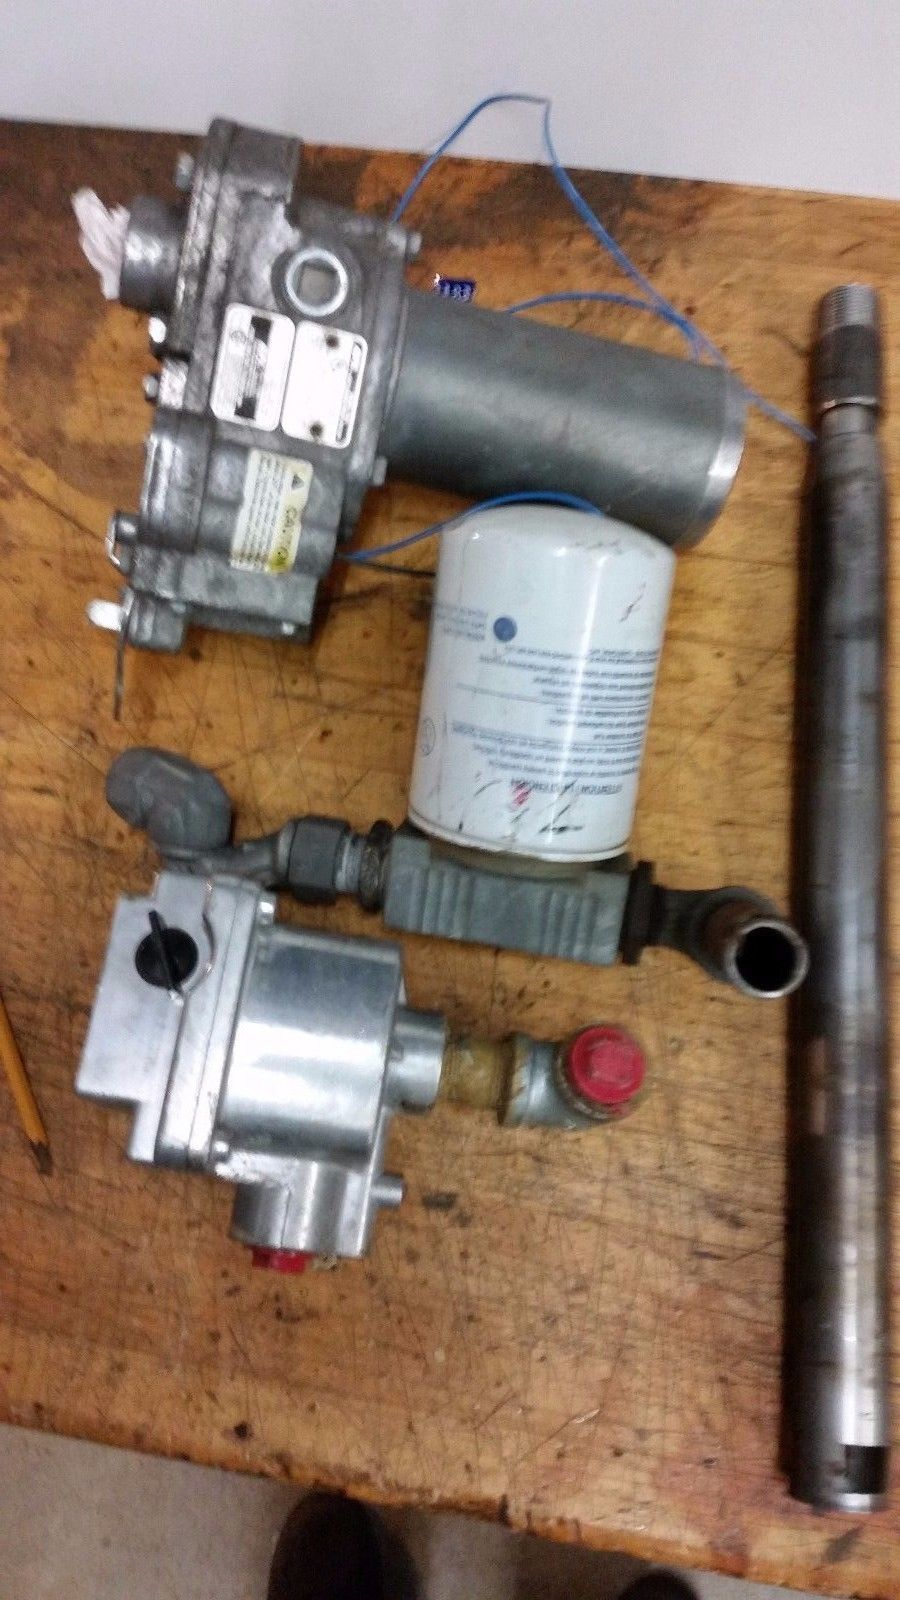 GPI MODEL 150S 12 VOLT FUEL TRANSFER PUMP FILTER & PBL G15 FLOW METER TOTALIZER